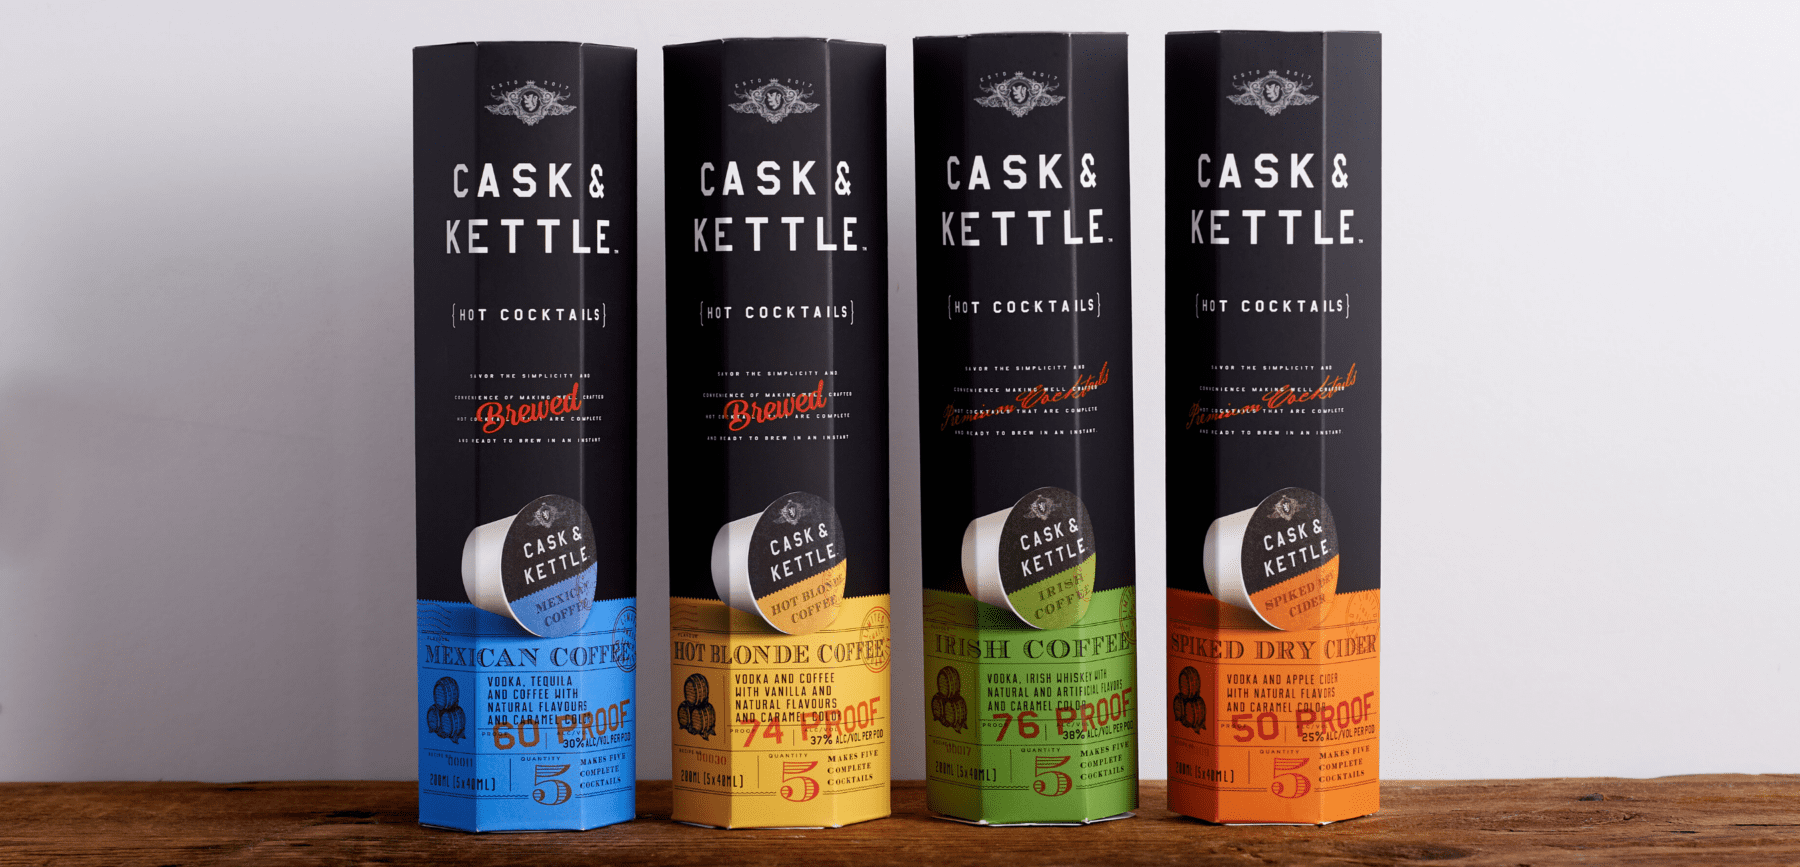 Cask & Kettle Hard Coffees